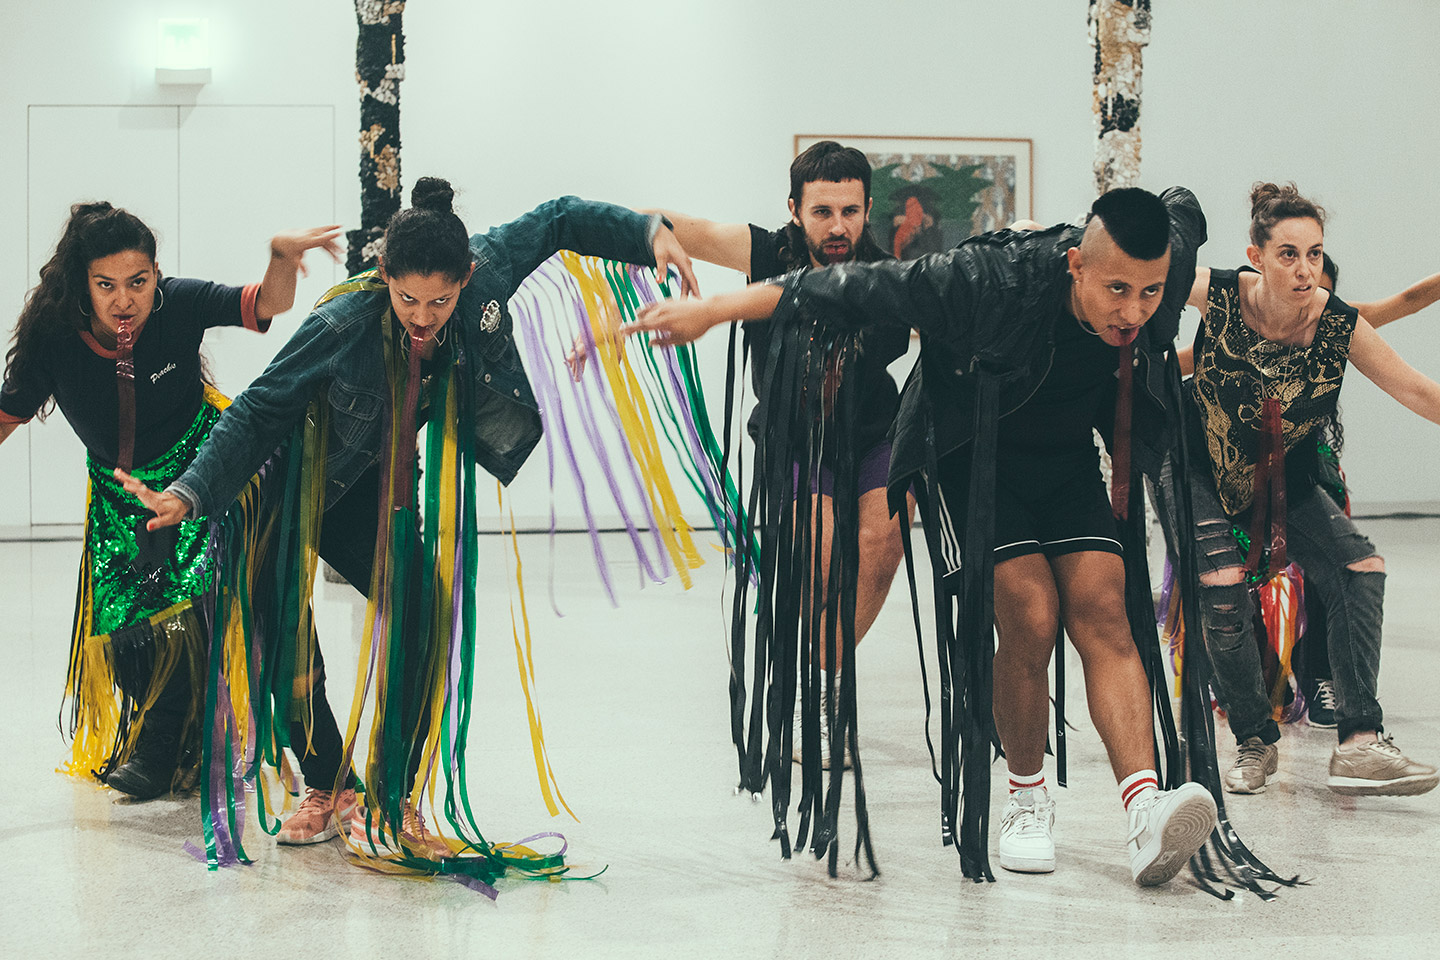 Commotion in the museum: Amanda Piña's Danza y Frontera.